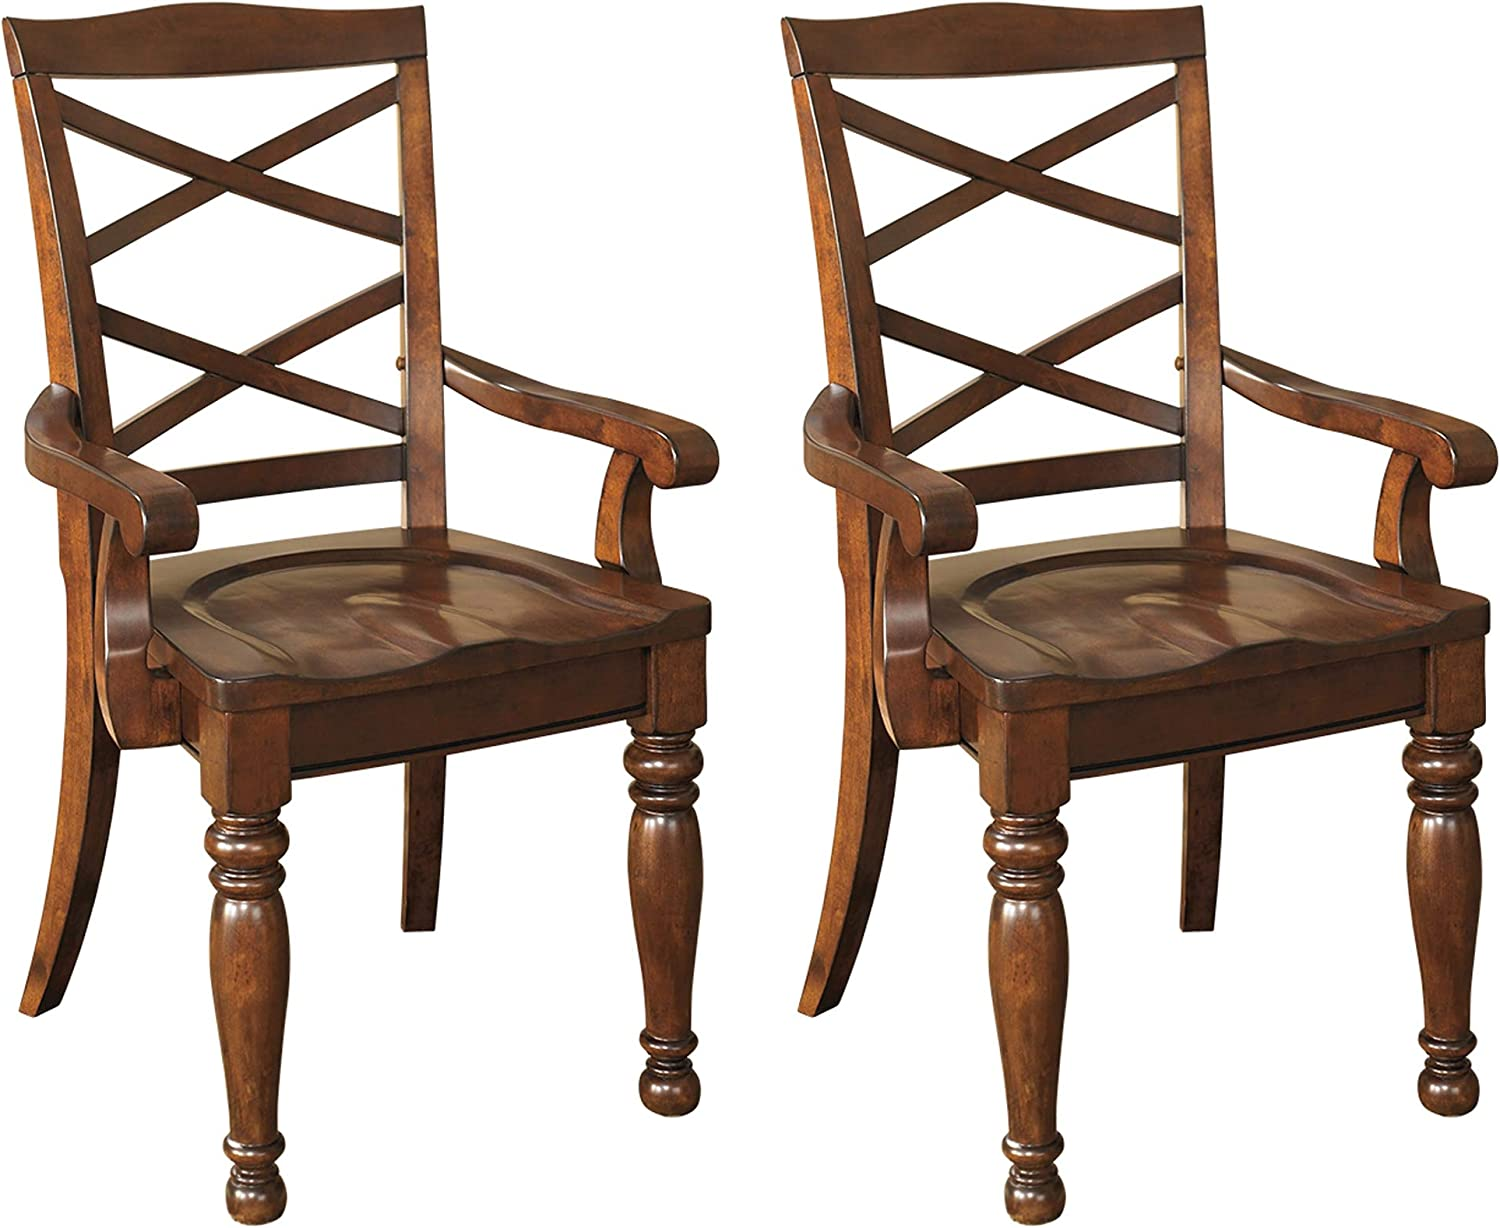 Signature Design by Ashley Porter Room Brow Chair Dining Rustic Brand Cheap Sale Venue Store